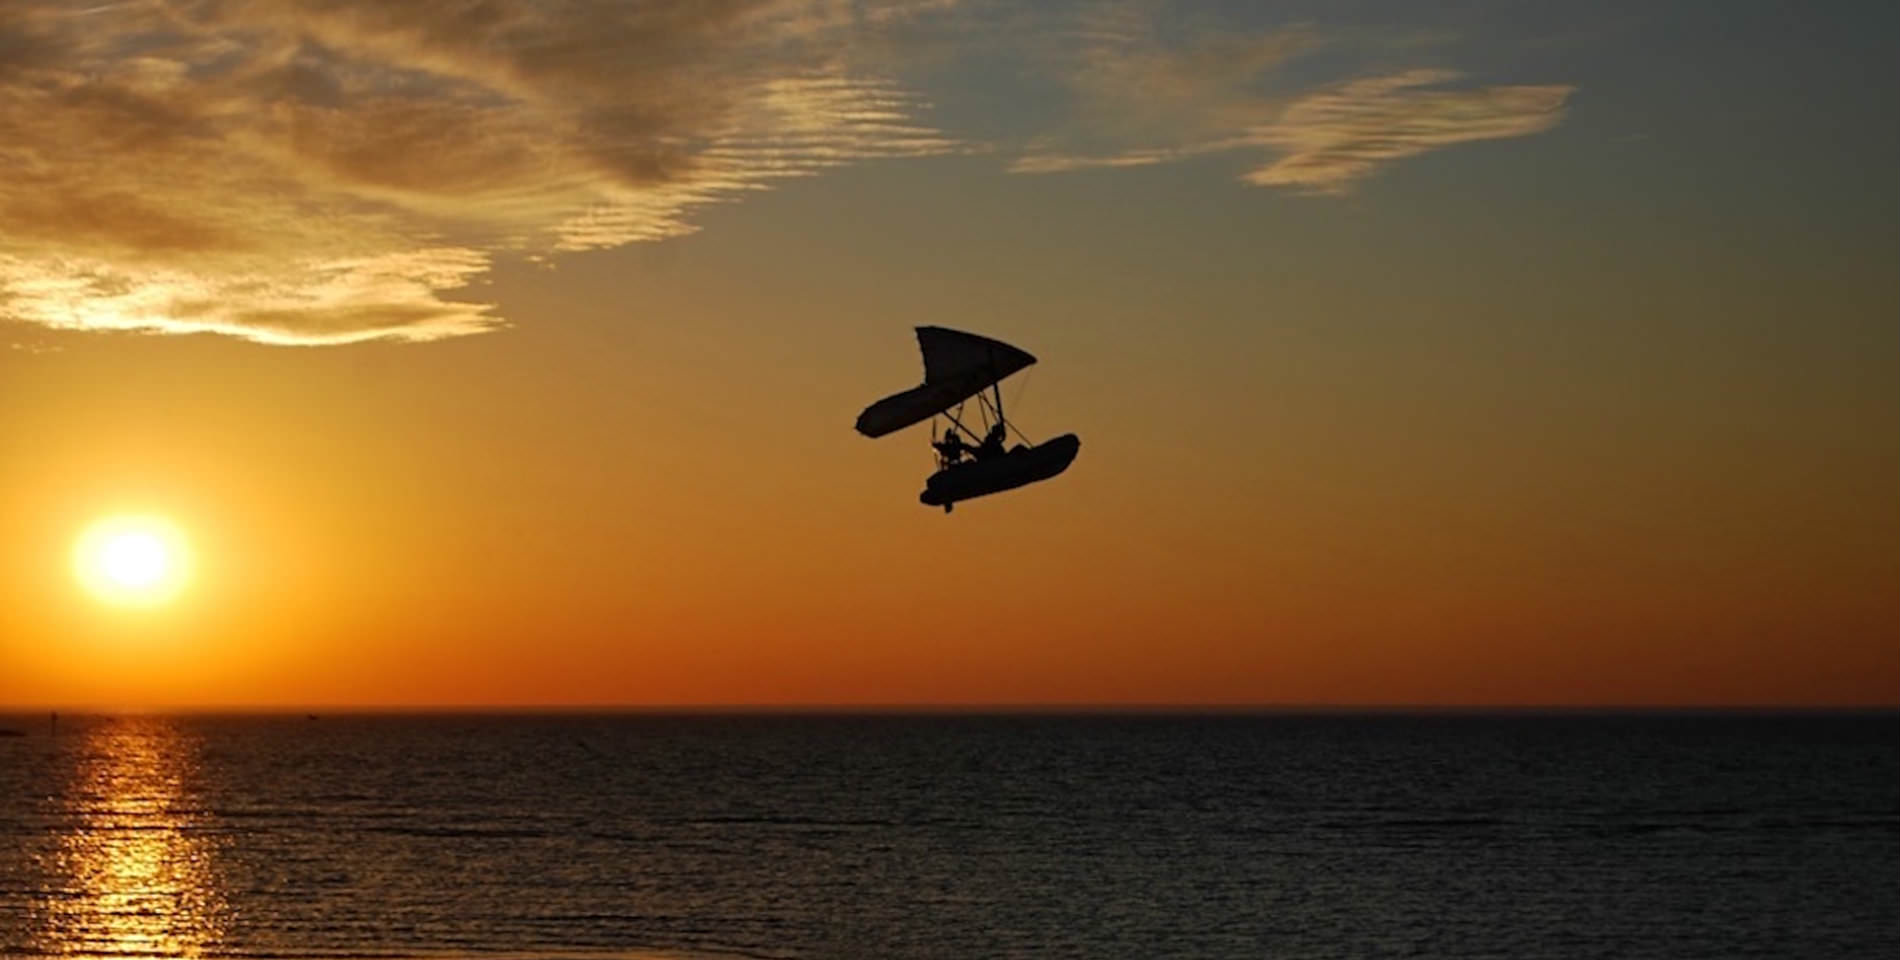 A silhoutetted windsurfer catches air above the Bay with a golden sunsetin the background.